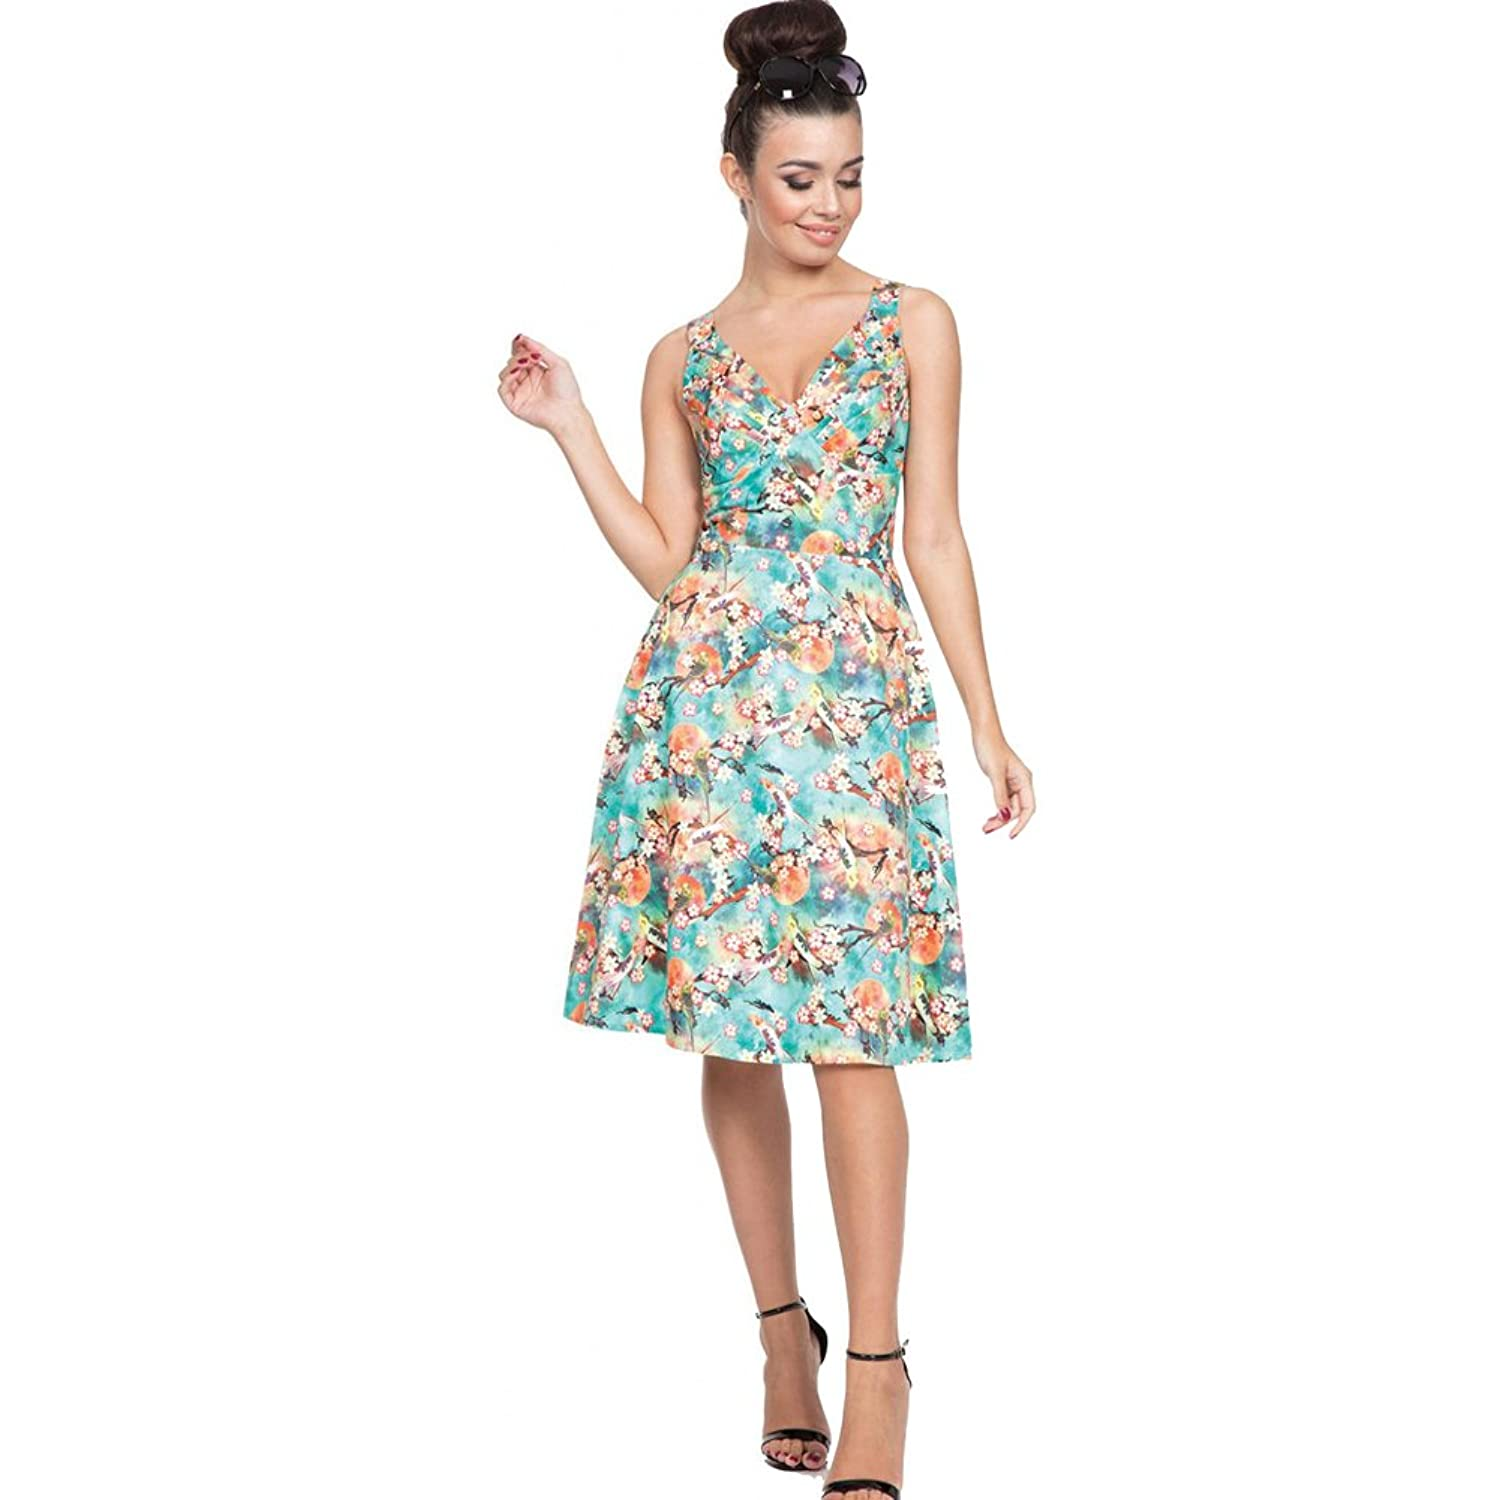 Rockabilly Dresses | Rockabilly Clothing | Viva Las Vegas Voodoo Vixen lizabeth Tropical Bird Print Flare Dress Green $62.99 AT vintagedancer.com